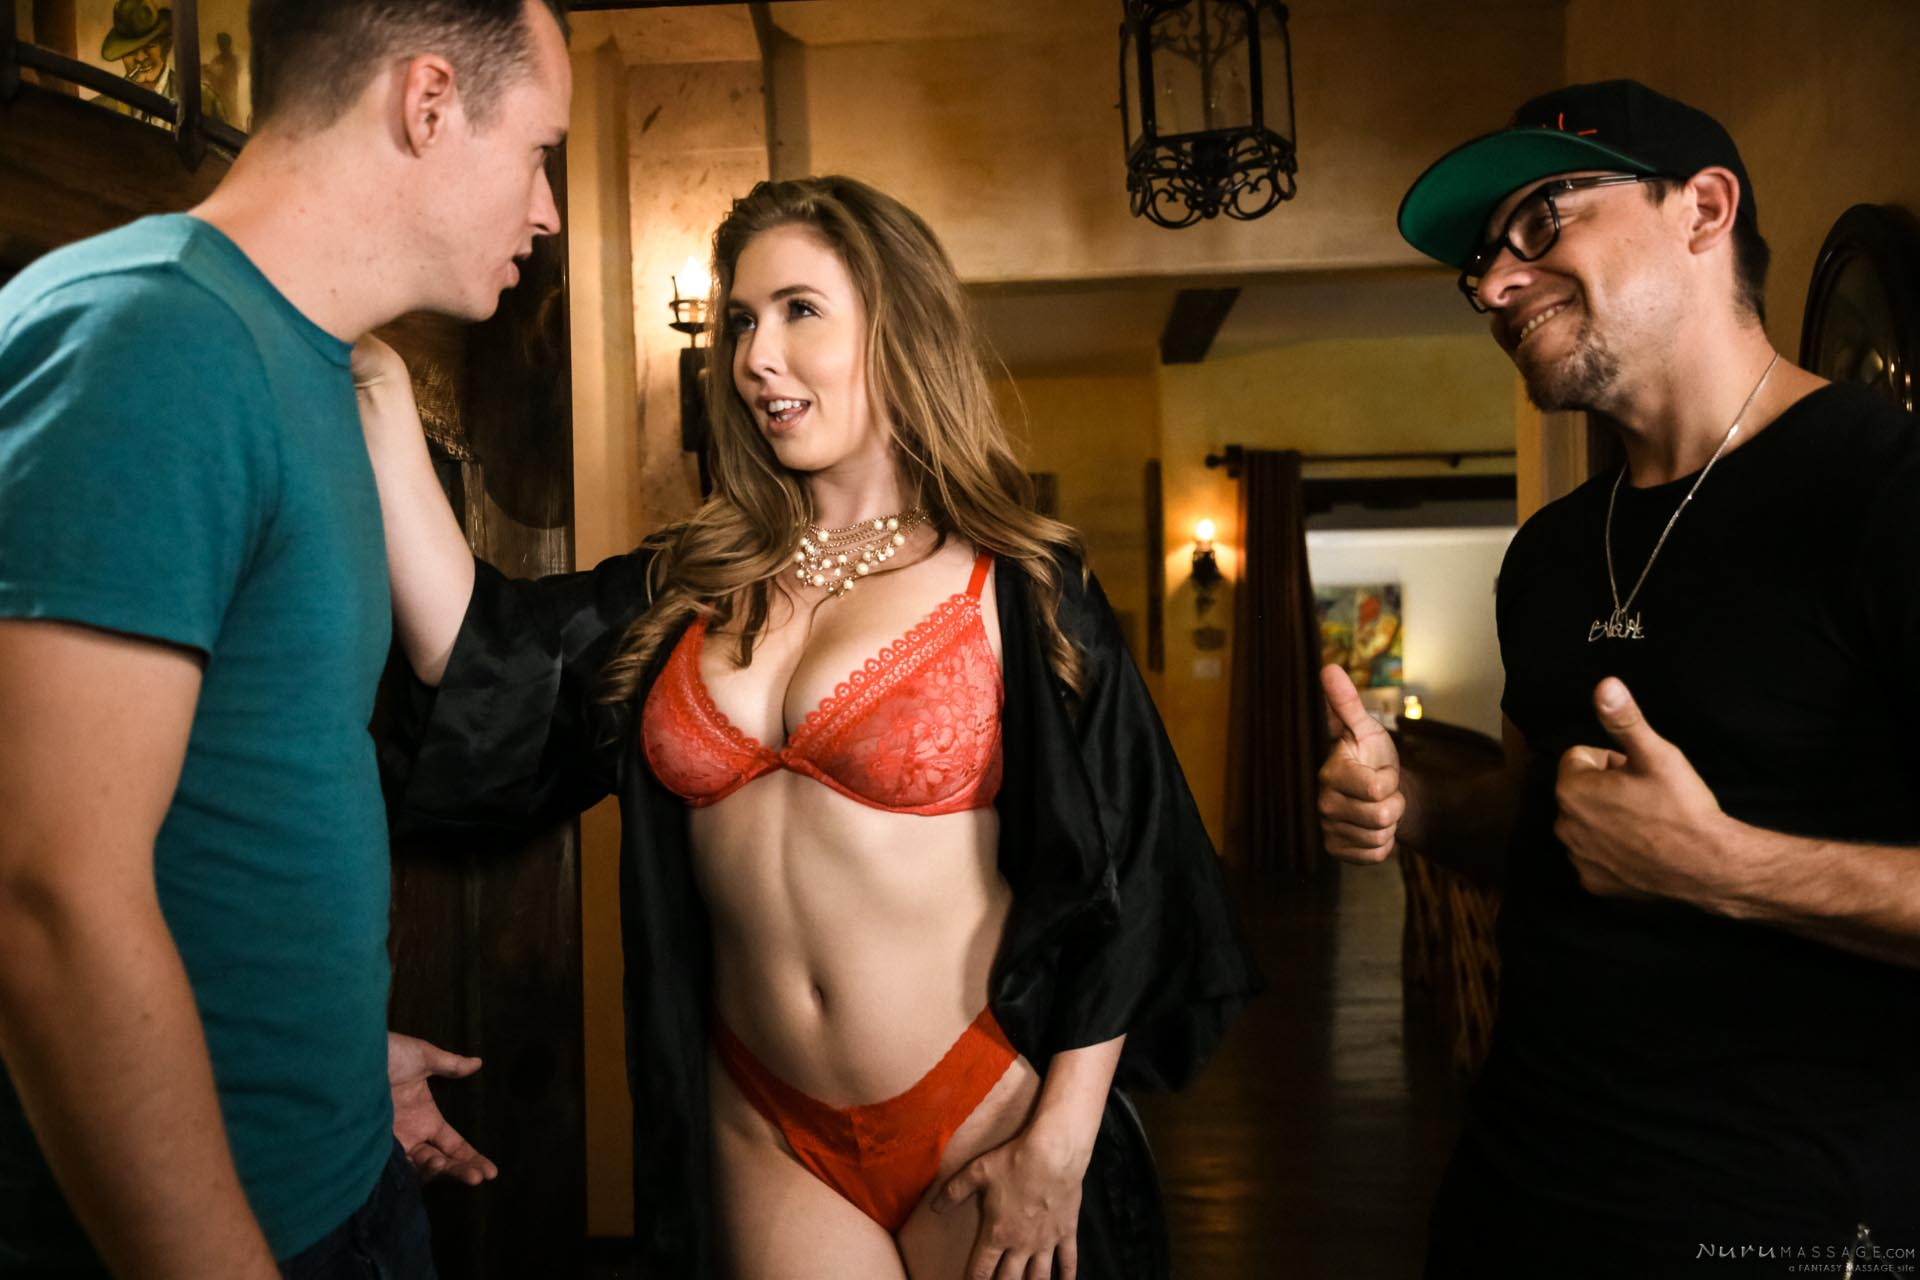 Nurumassage the confused nerd lena paul, justin hunt